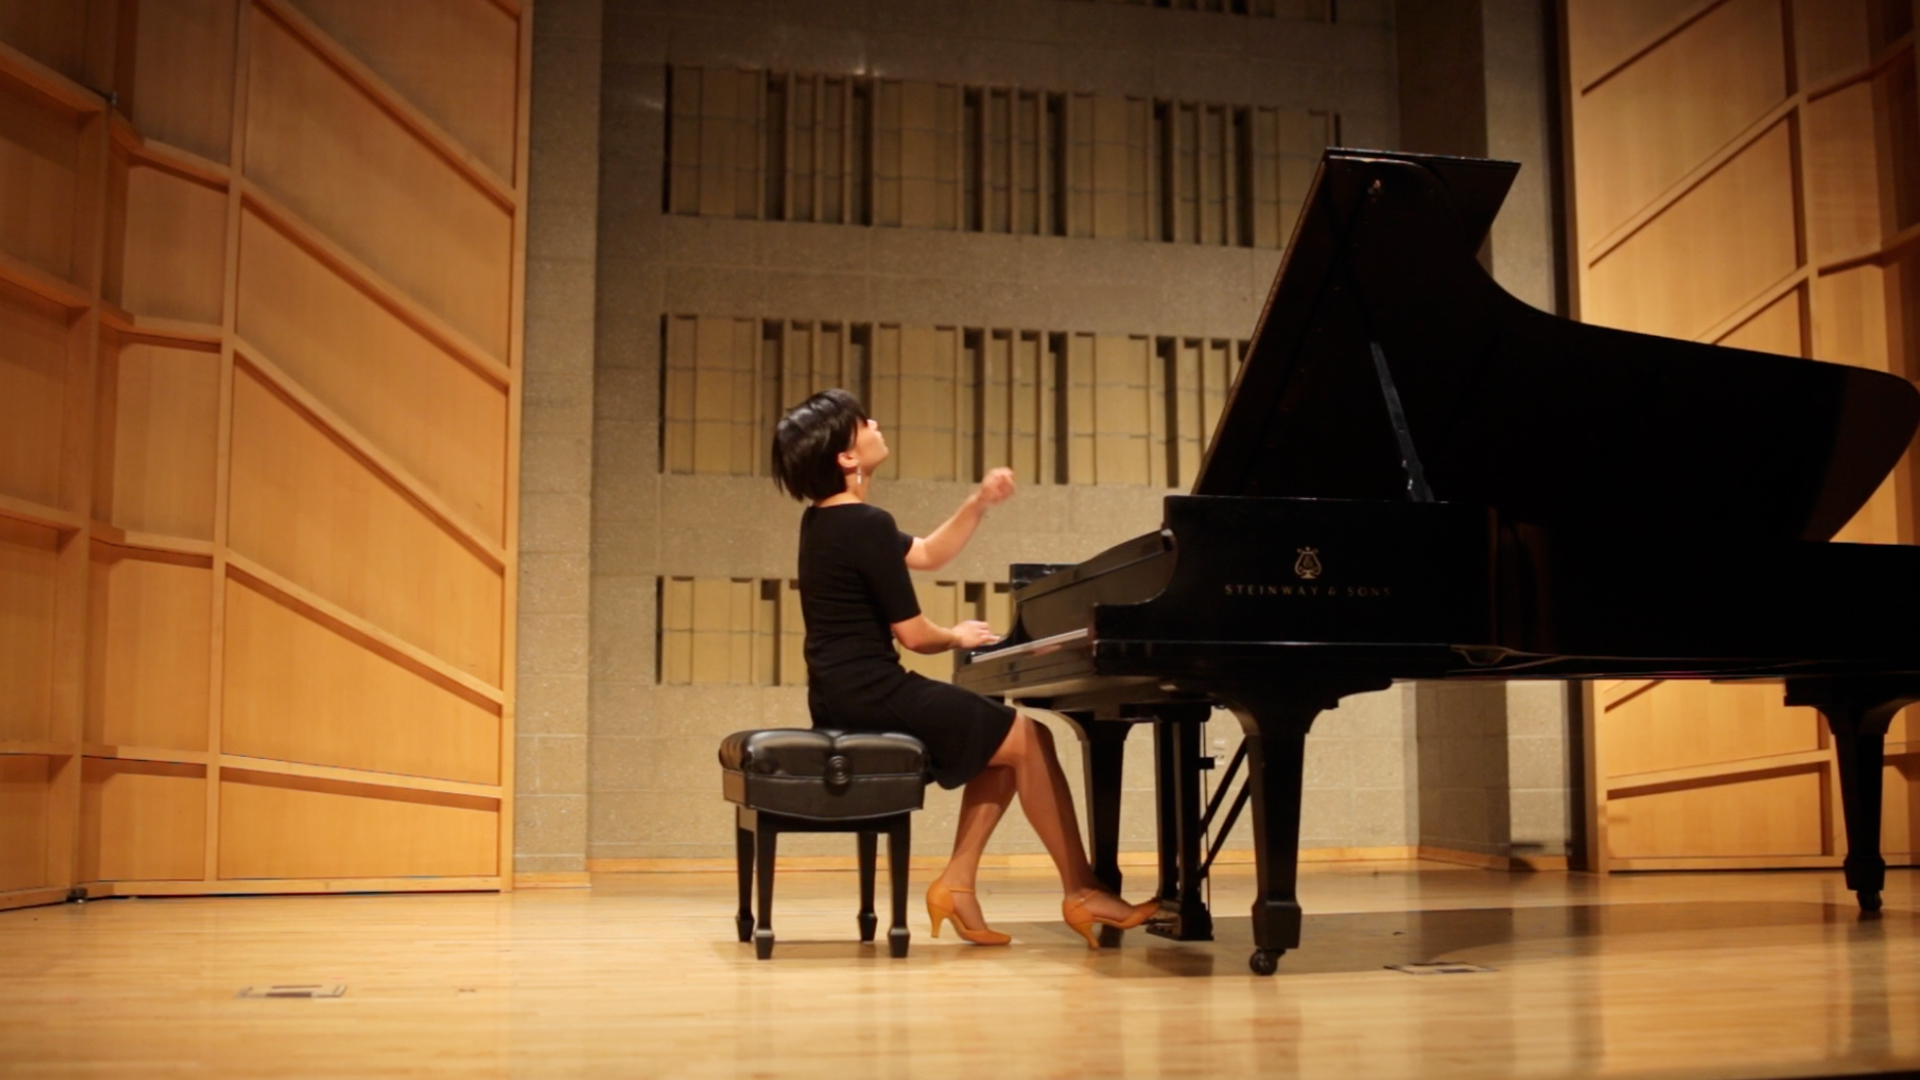 June Wu performs Liszt Hungarian Rhapsody No. 12 at the Baruch Performing Arts Center in NYC in April 2014.